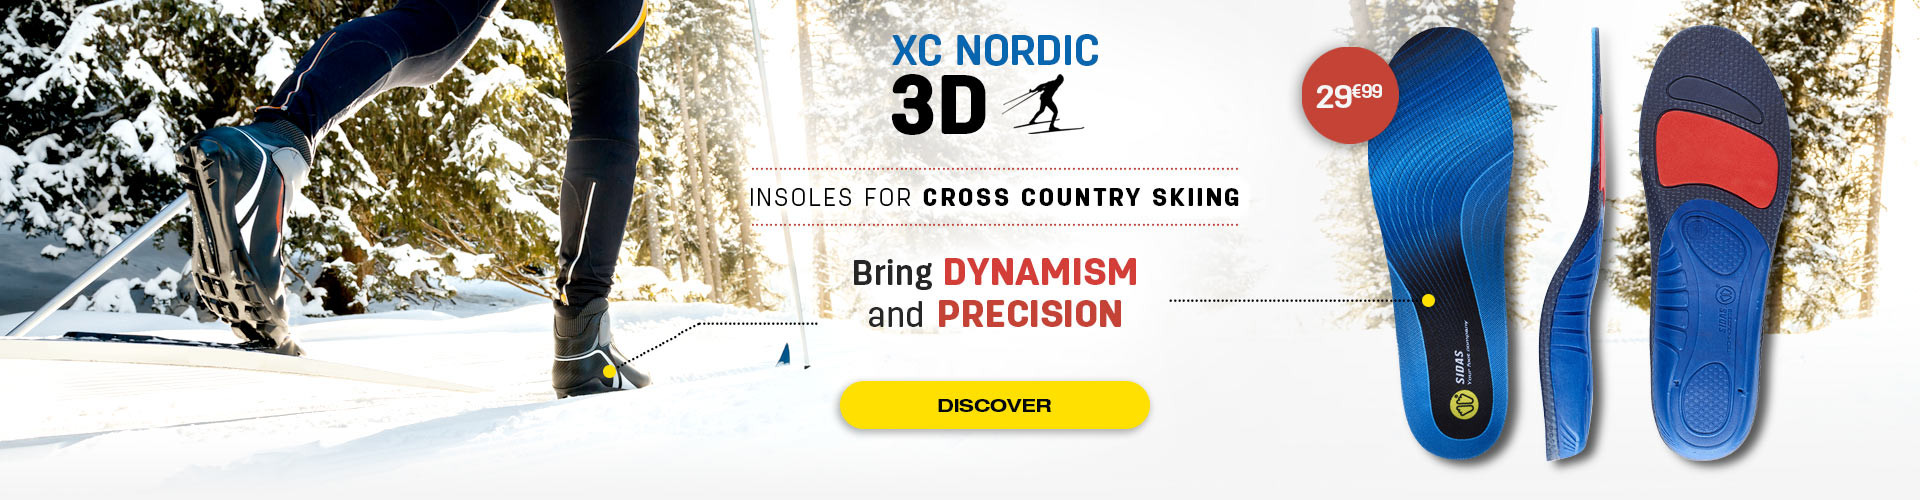 Bring dynamism and precision thanks to 3D XC Nordic insoles